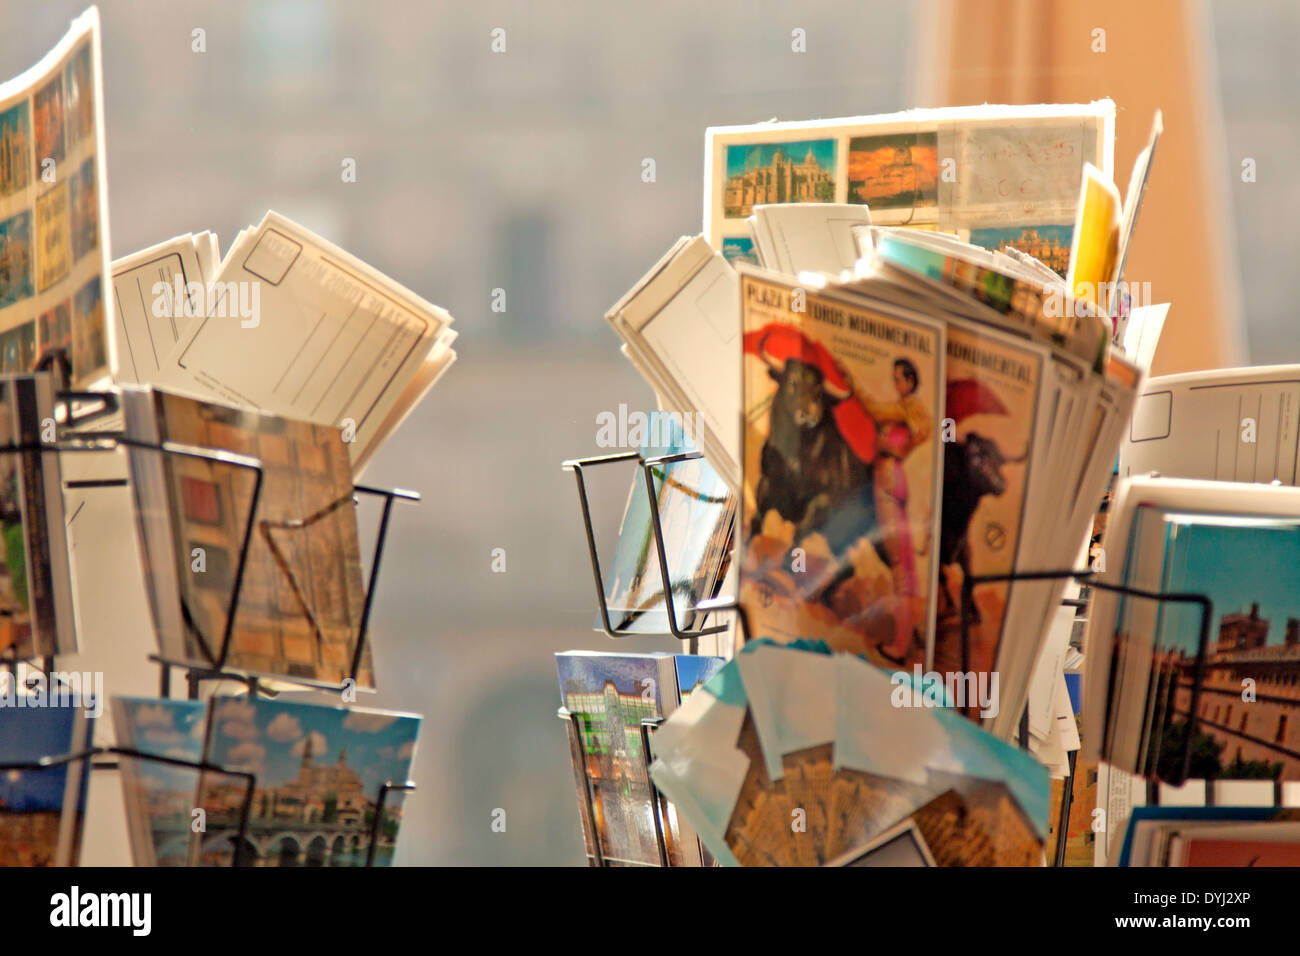 Picture postcards for sale from Spain at the Plaza Mayor, Salamanca, Castilla y León, Spain. Stock Photo